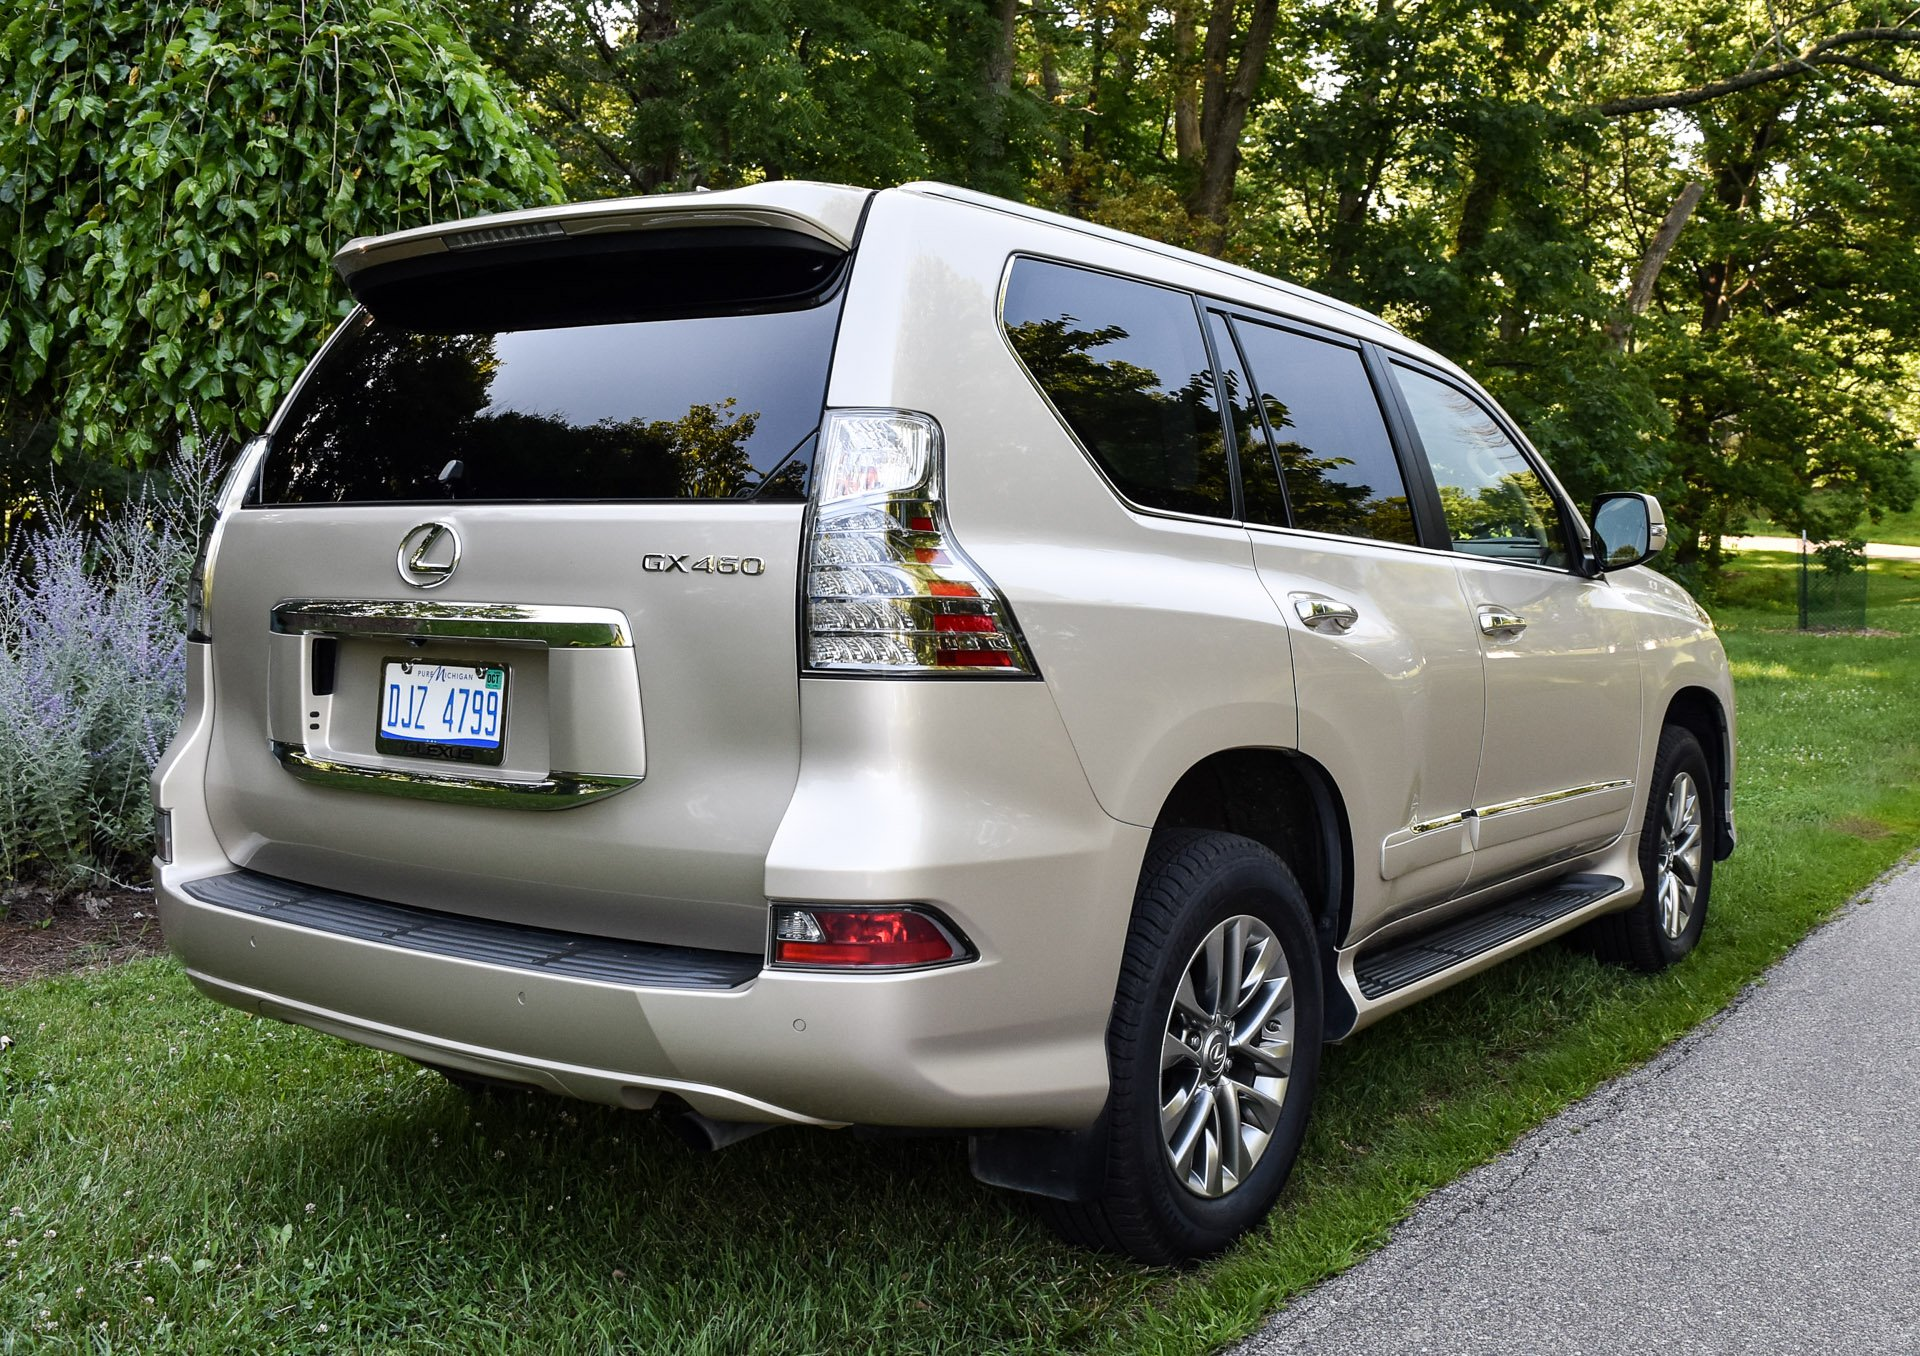 Suv With Third Row >> Review: 2016 Lexus GX 460 - 95 Octane